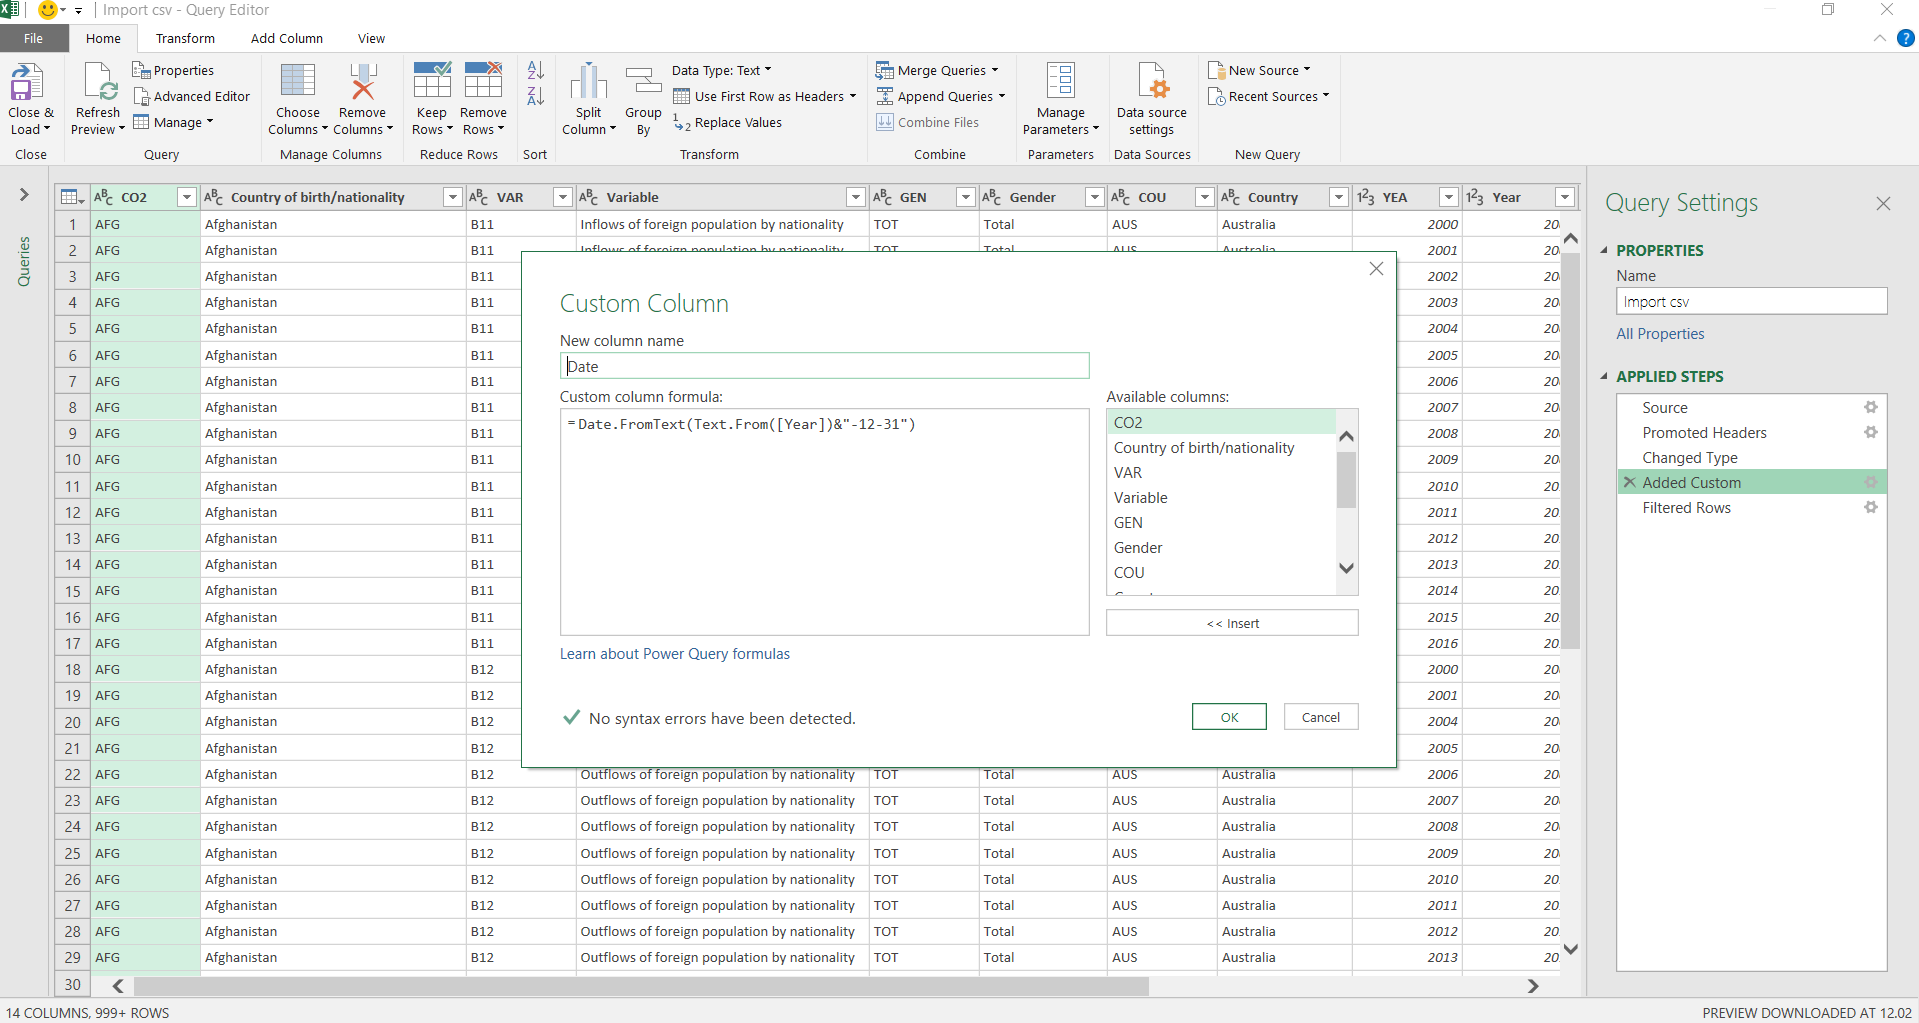 Excel Power Query editor. Added a custom column to convert the year to a date.